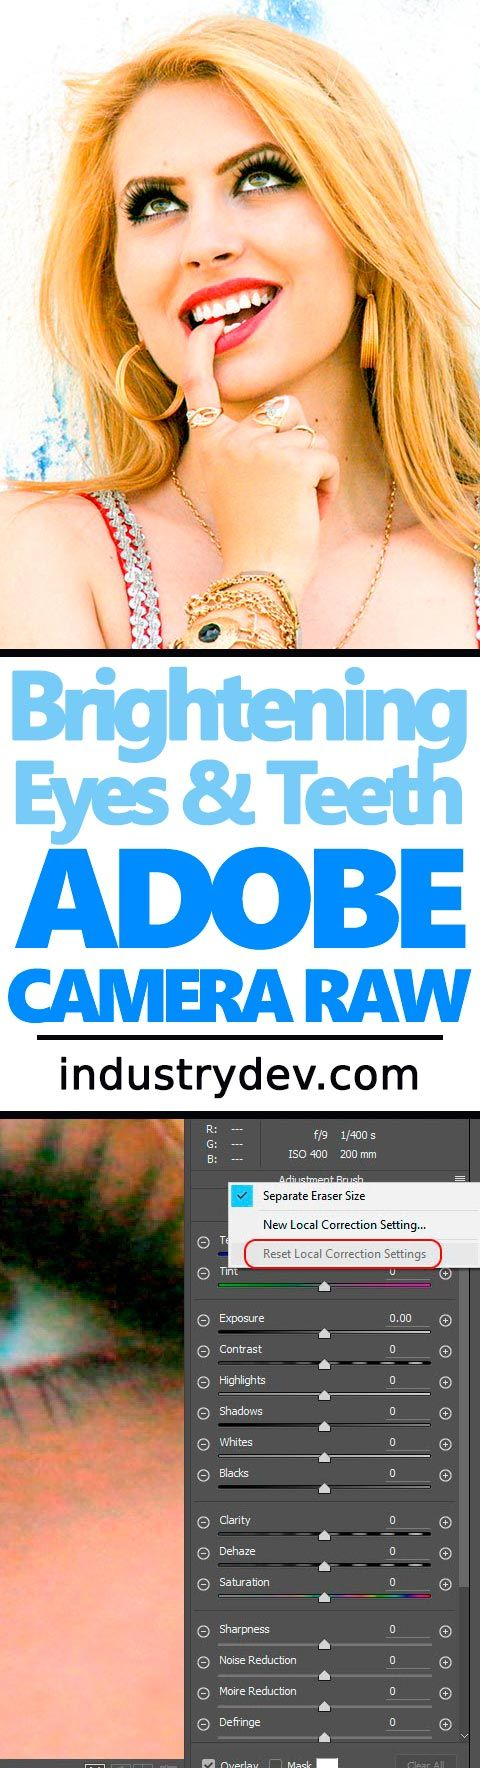 How to Whiten Eyes & Teeth in Adobe Camera Raw: Brightening eyes and teeth are the first place an editor goes when they open a photo. Traditionally, this type of work has been done in Photoshop, but with the ease of use the Adjustment Brush in Camera Raw offers, more and more people are completing these types of tasks there. Brightening these two areas can offer a drastic improvement in almost any photo. And believe it or not, it only takes a few moments and not many more steps.